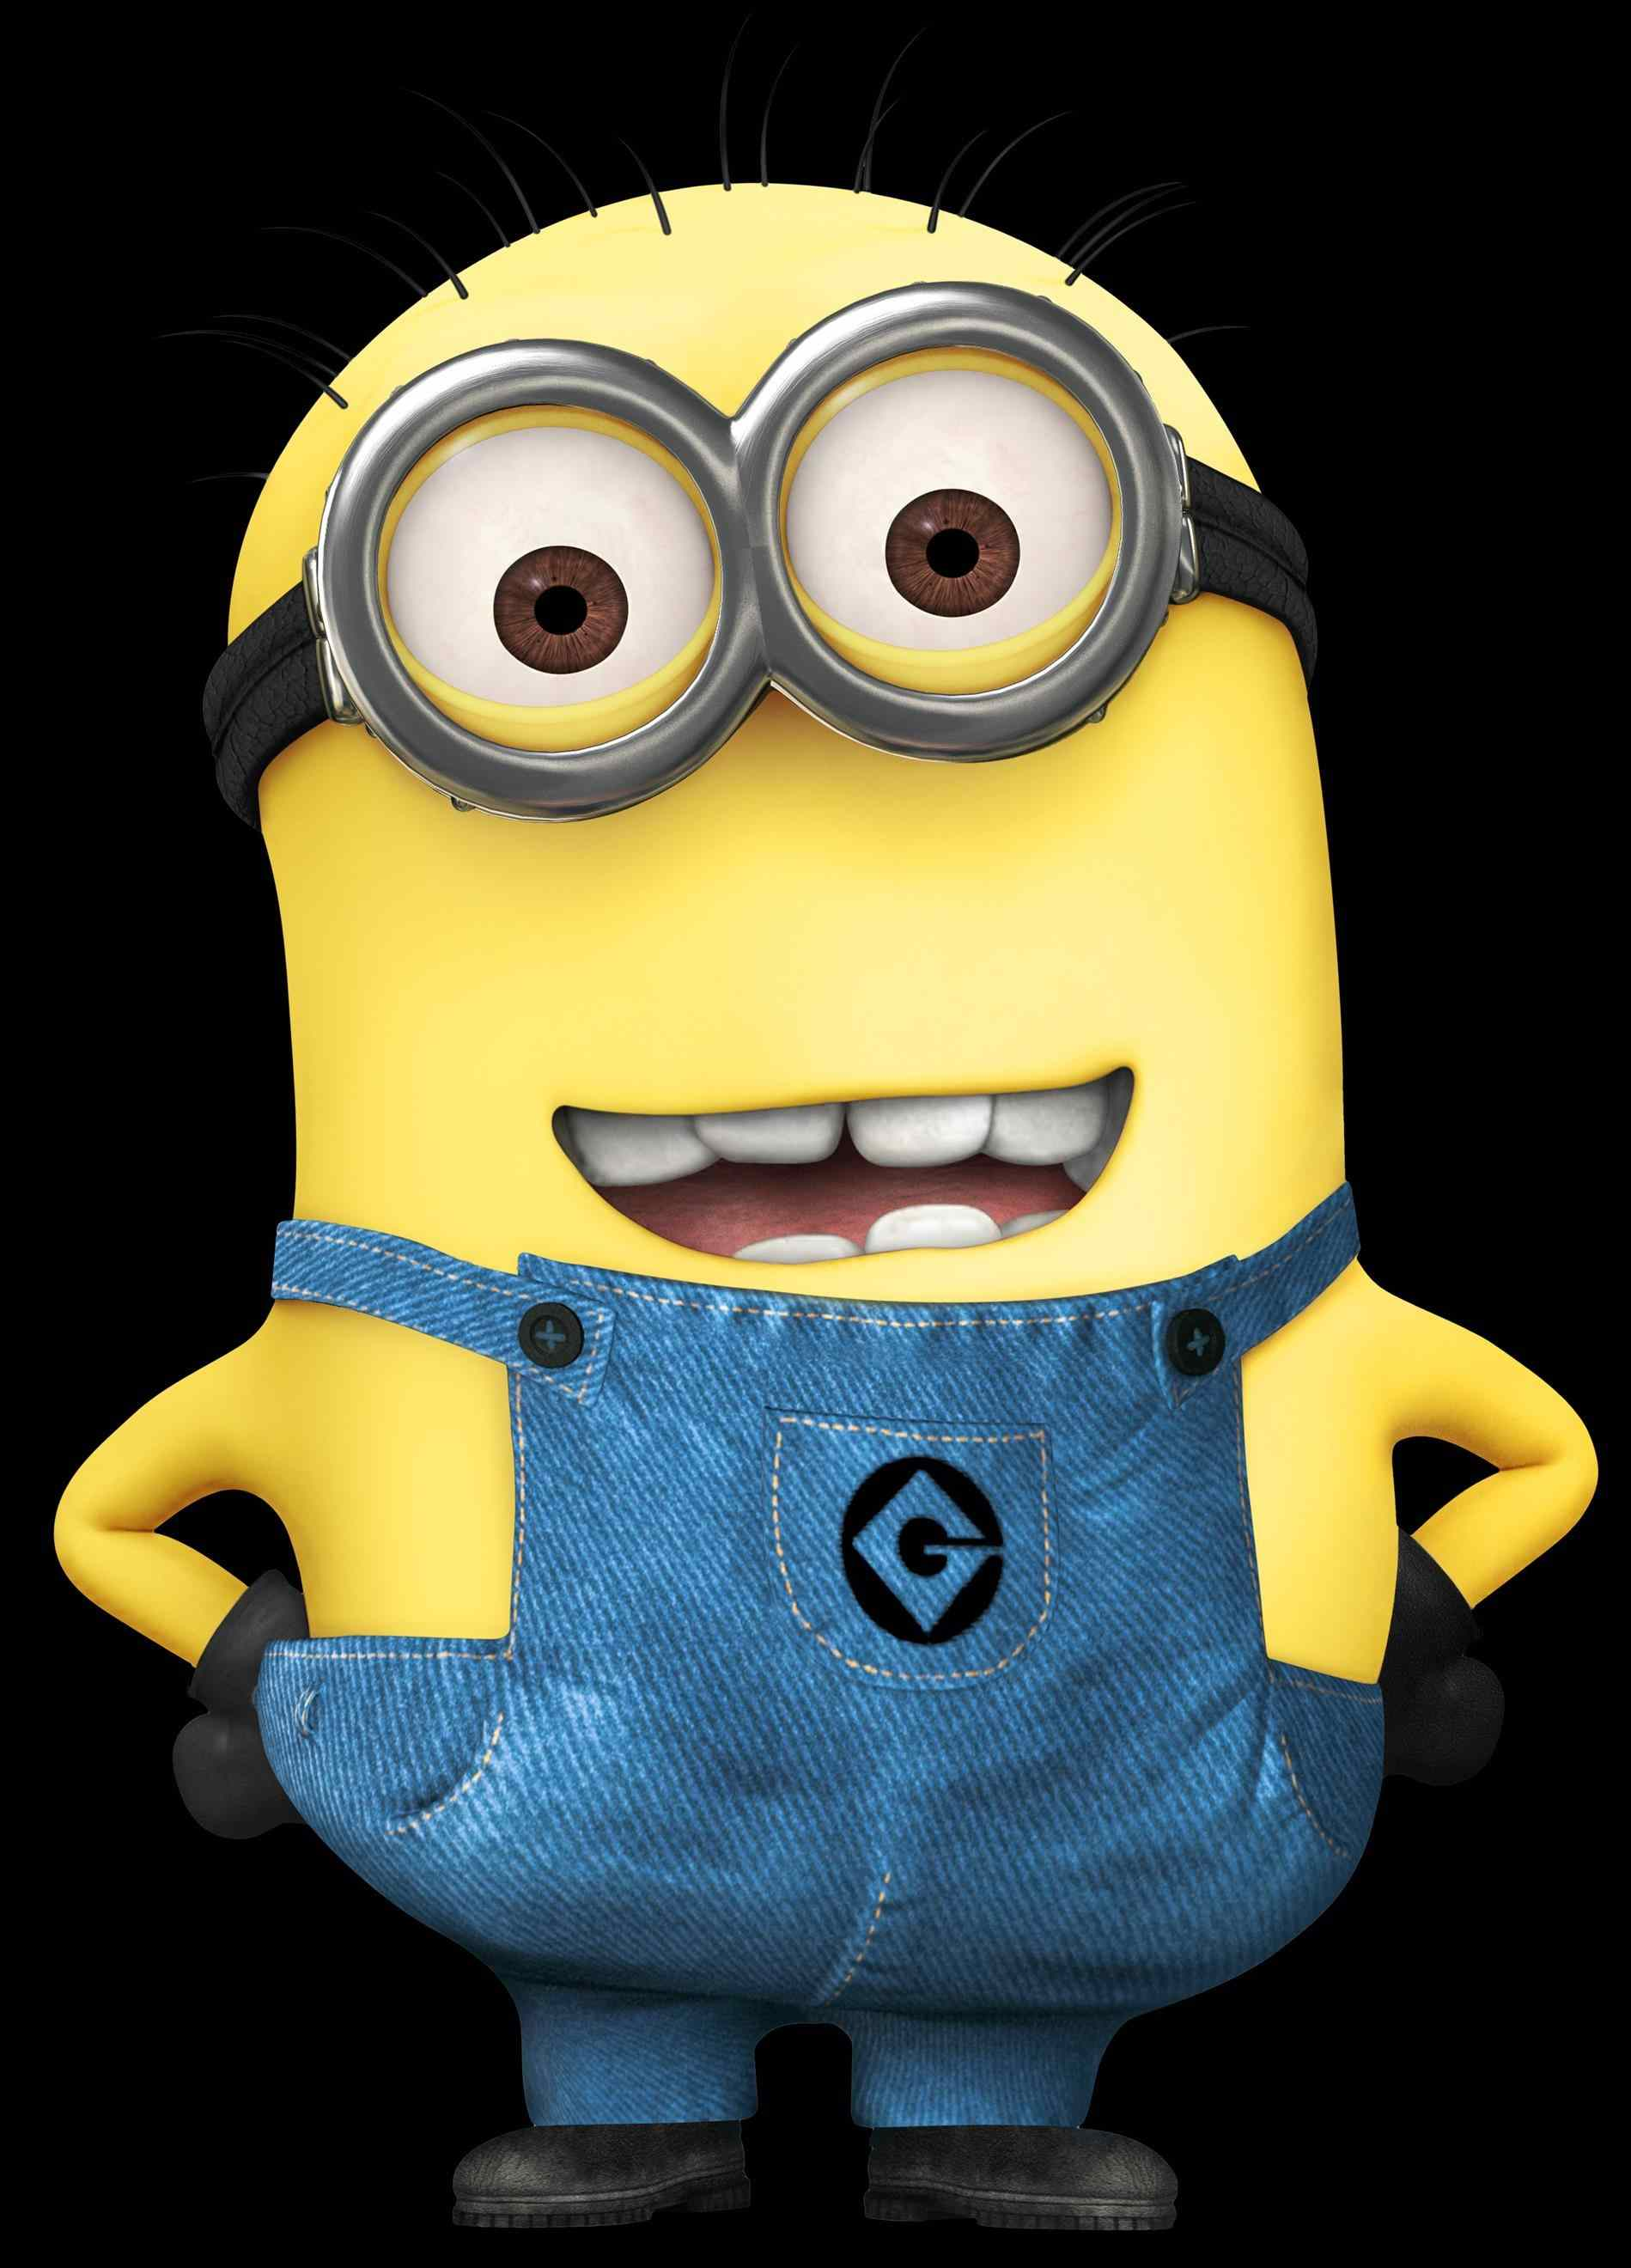 Minion Hd Wallpapers Posted By Sarah Cunningham